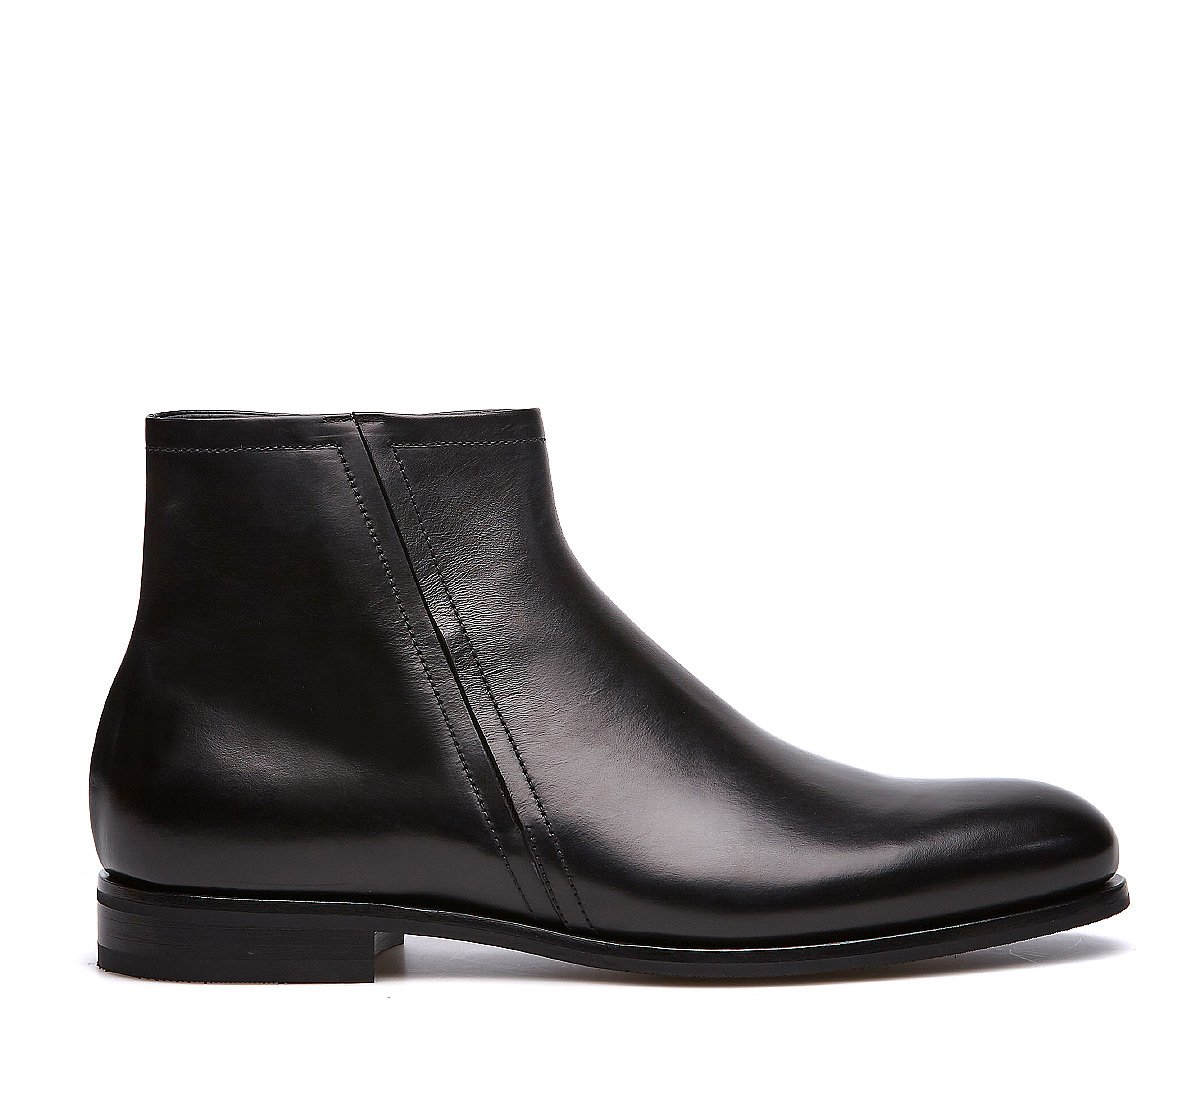 Beatle in calfskin with a warm shearling lining